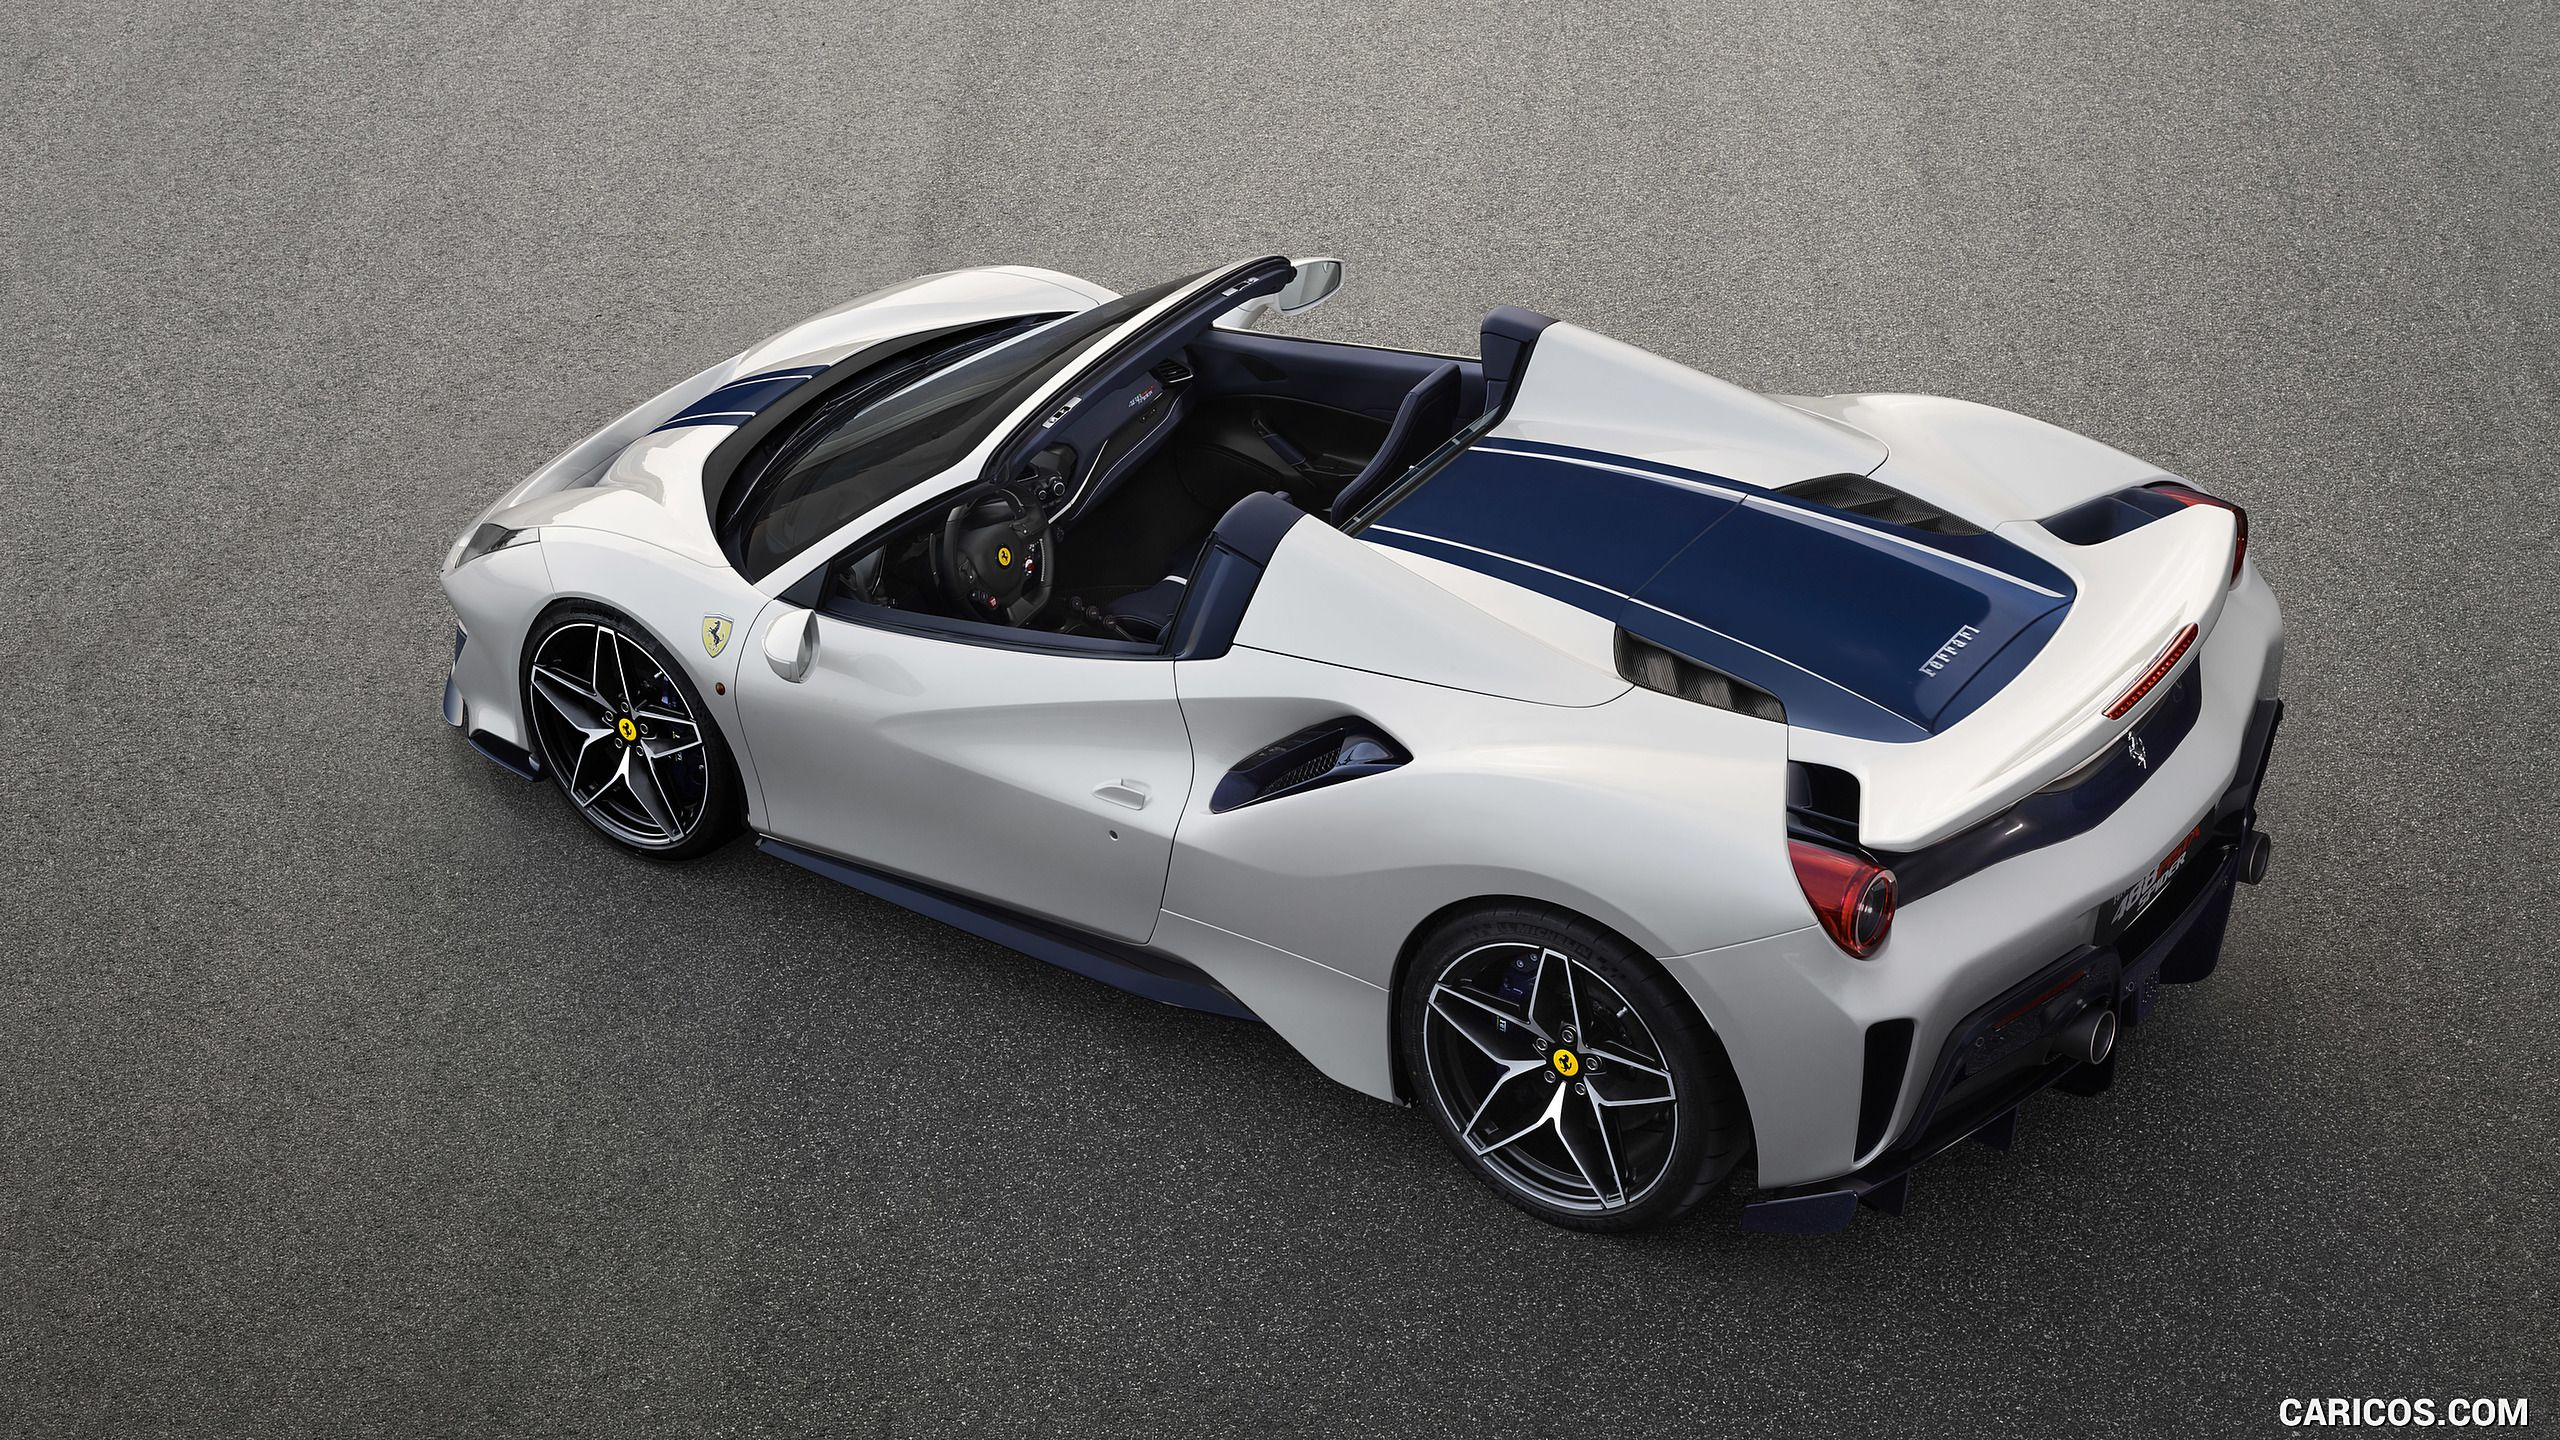 2019 Ferrari 488 Pista Spider Car Wheels Ferrari Car Ferrari 488